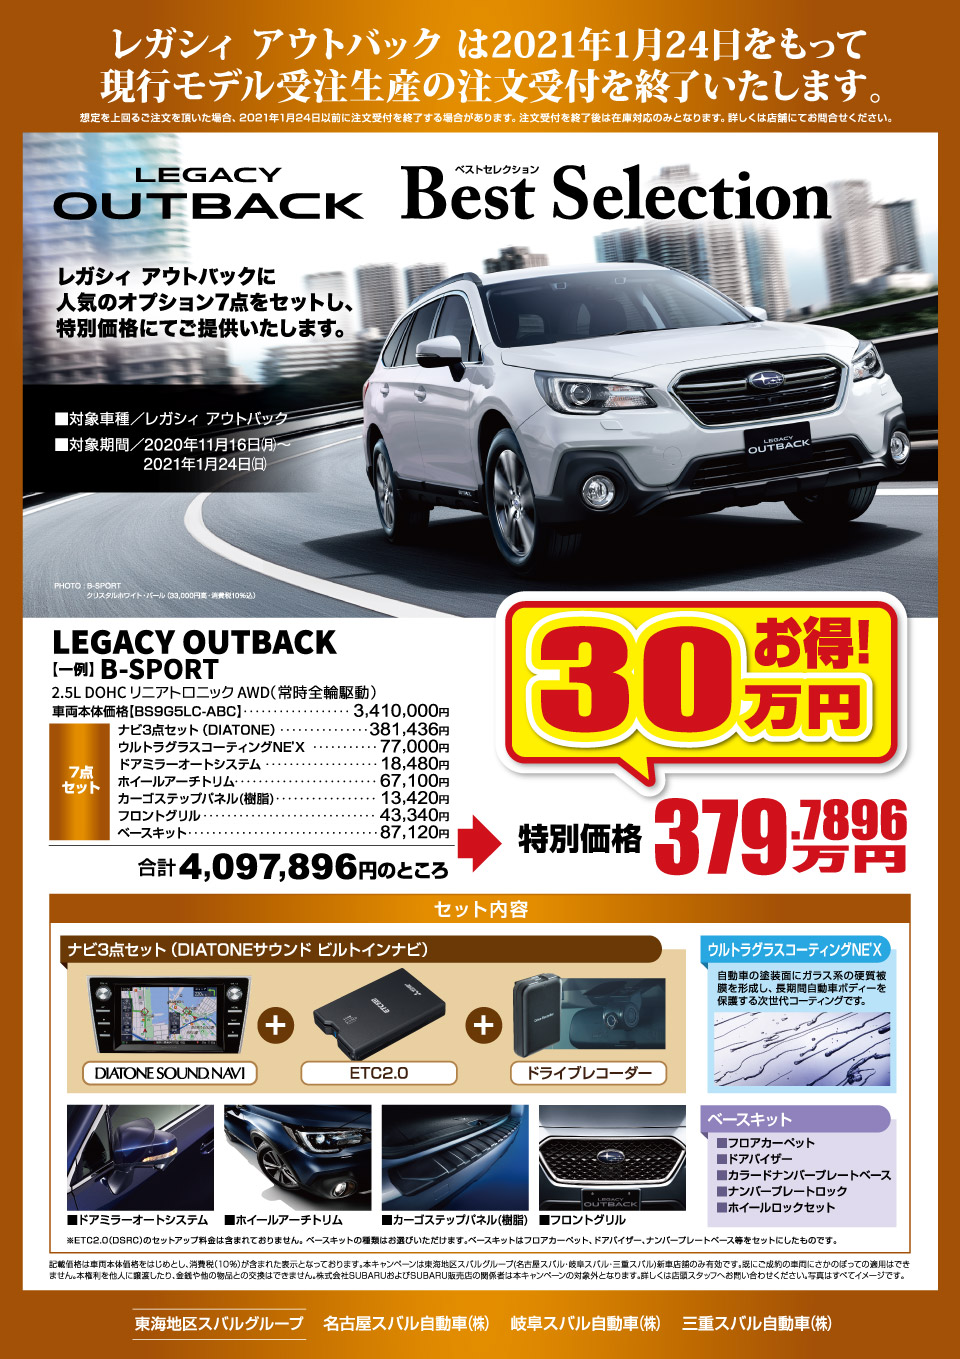 LEGACY_OUTBACK_BestSelection